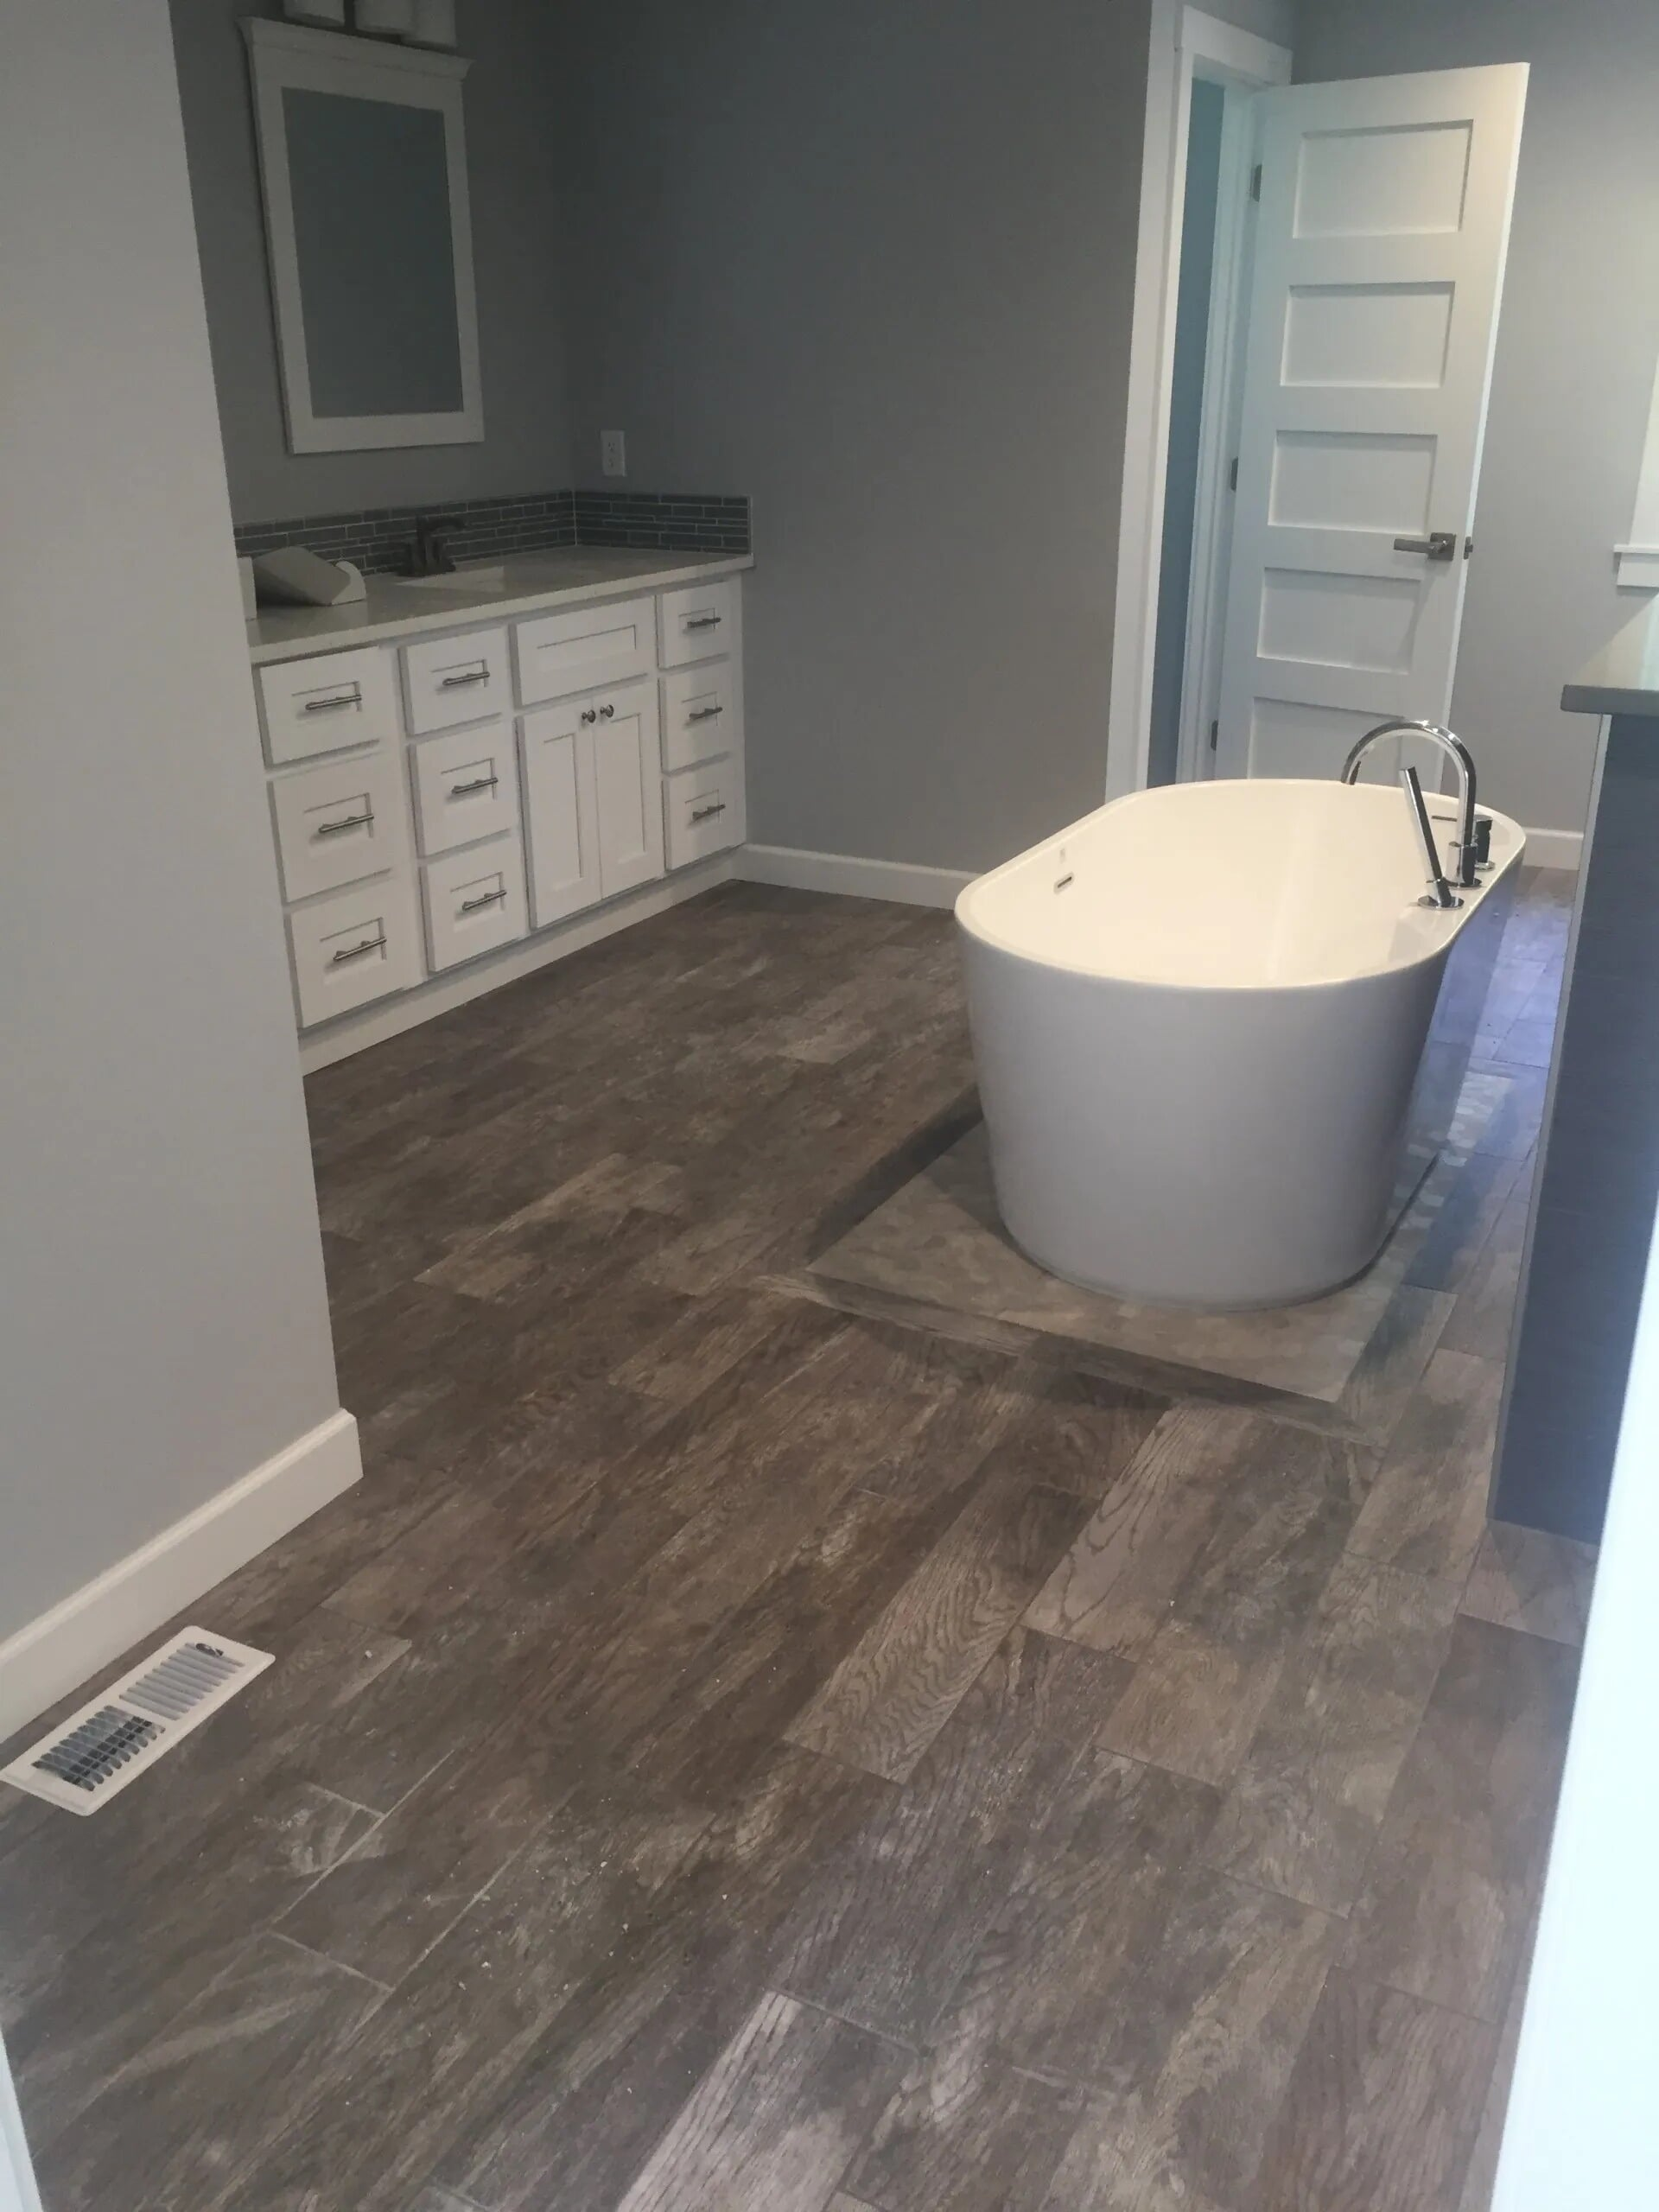 Wood look bathroom flooring install in Lakeville, MN from Infinite Floors and More